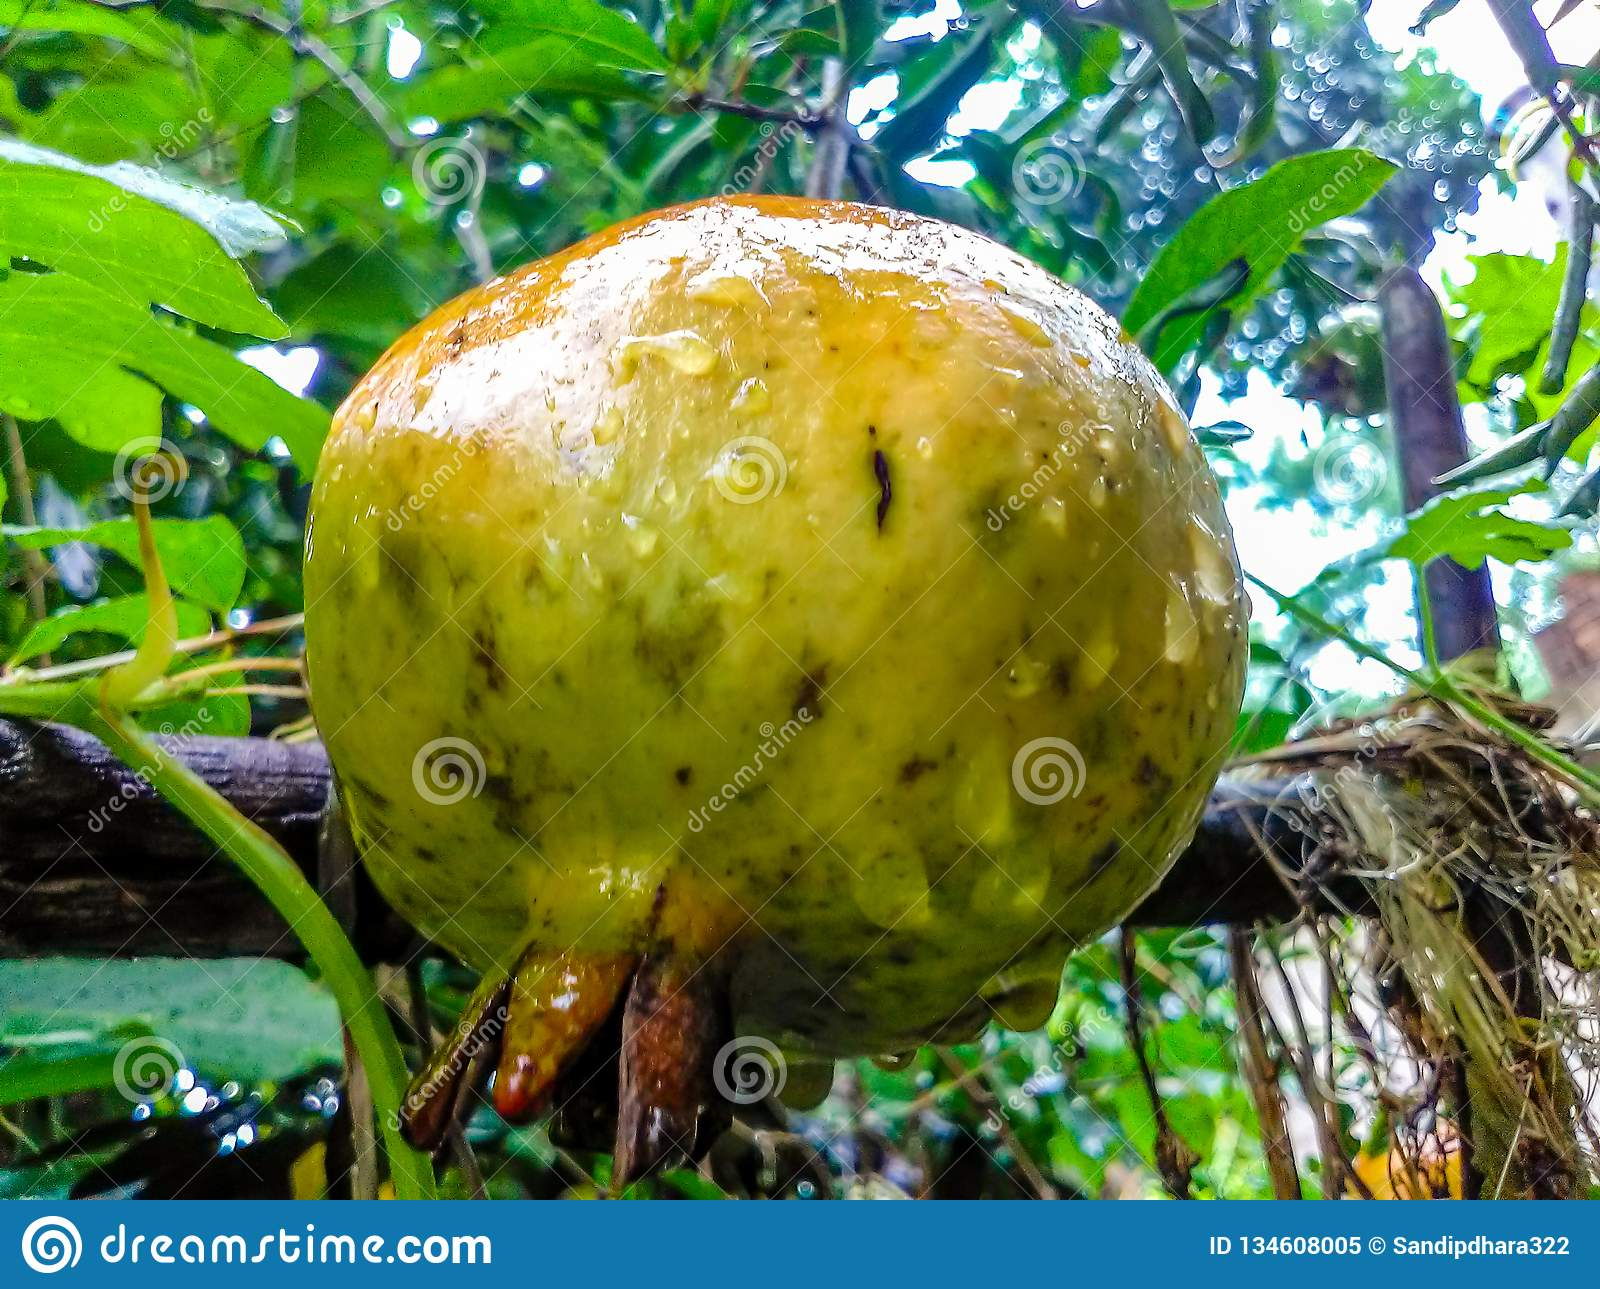 Large delicious pomegranate hanging from a tree in a rainy day